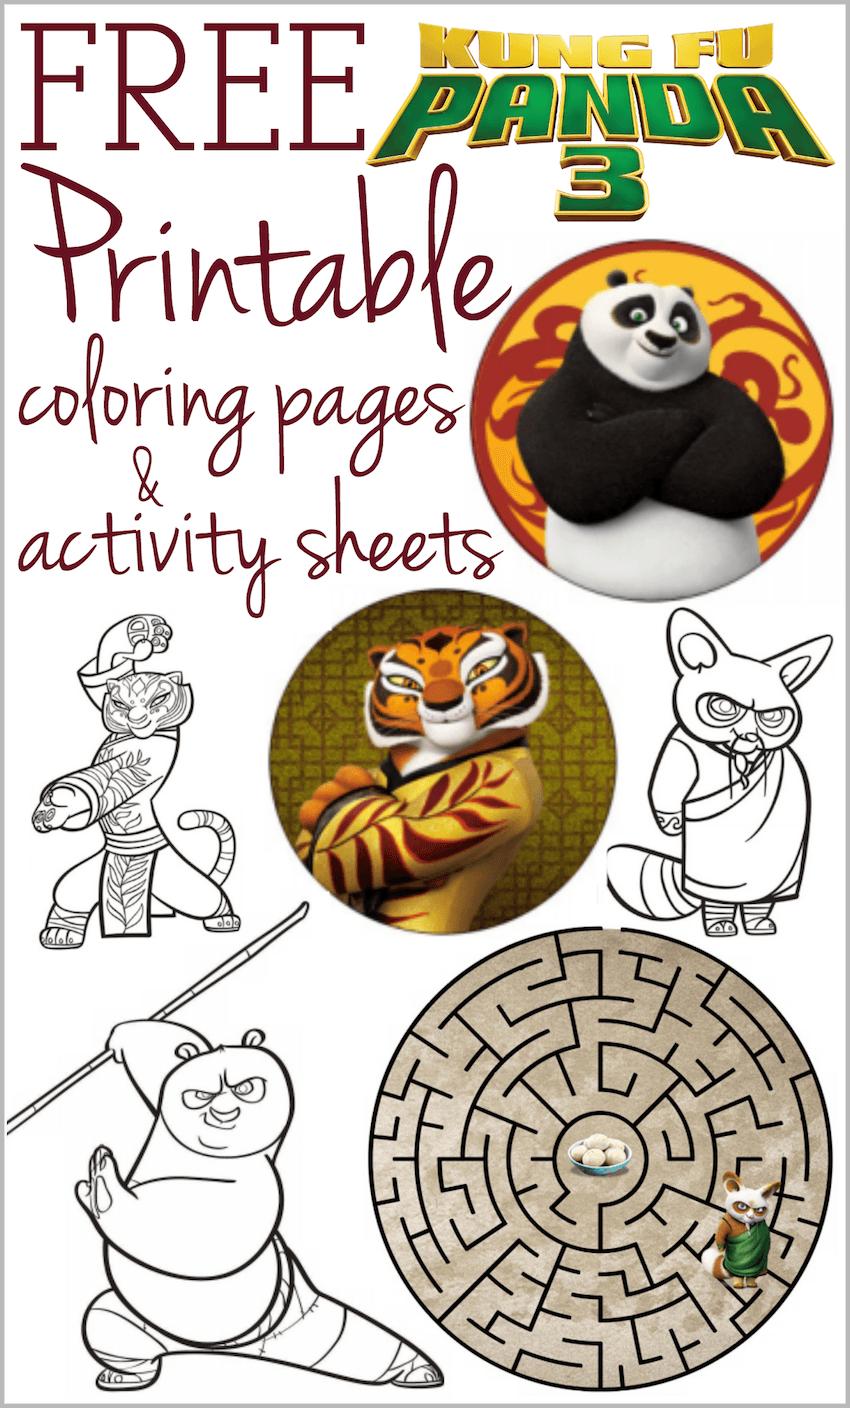 Coloring pages panda for kids to print - Kung Fu Panda 3 Printable Coloring Pages And Activity Sheets